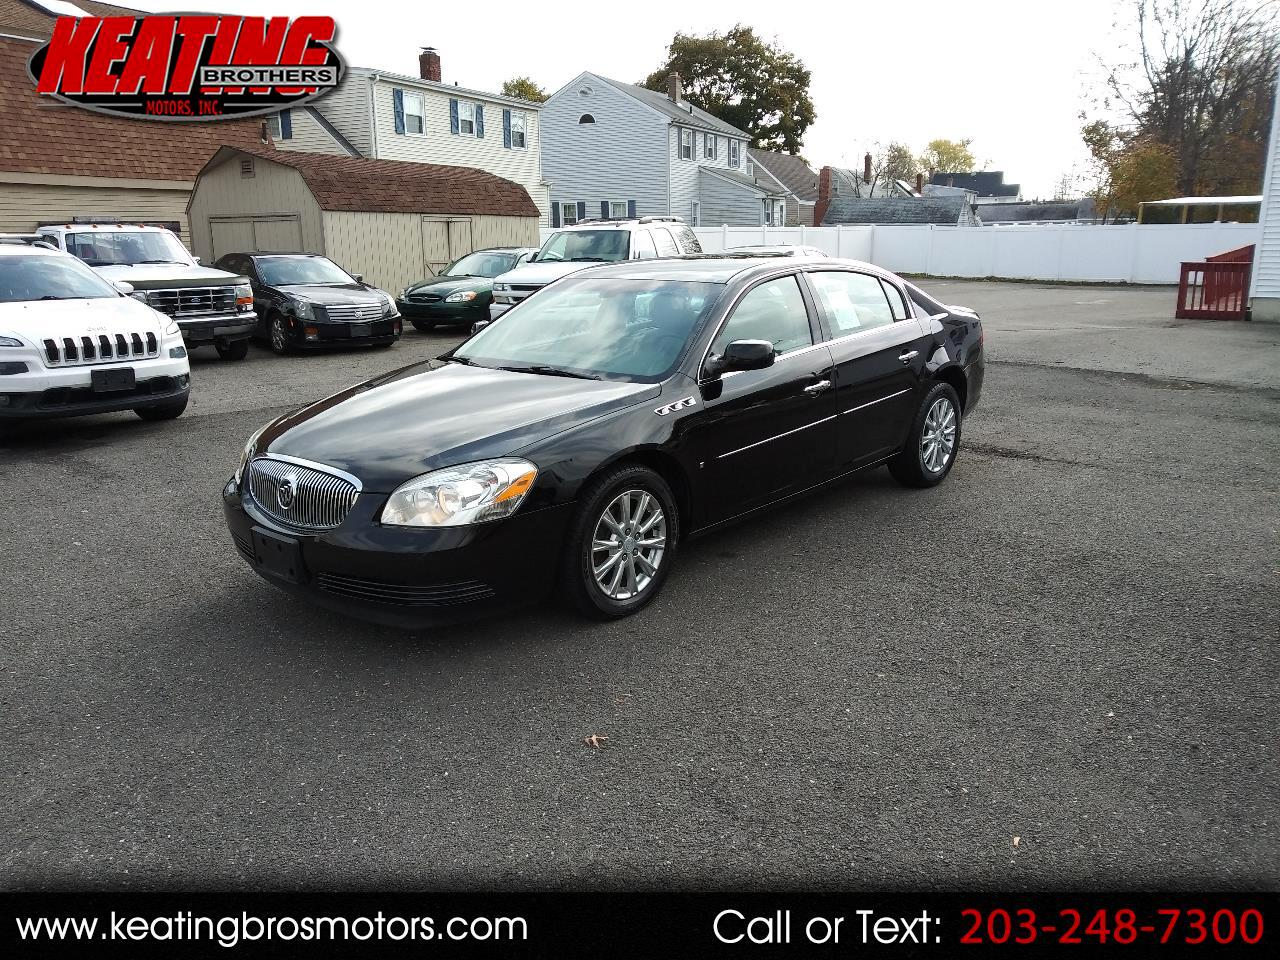 Buick Lucerne 4dr Sdn CXL 2009